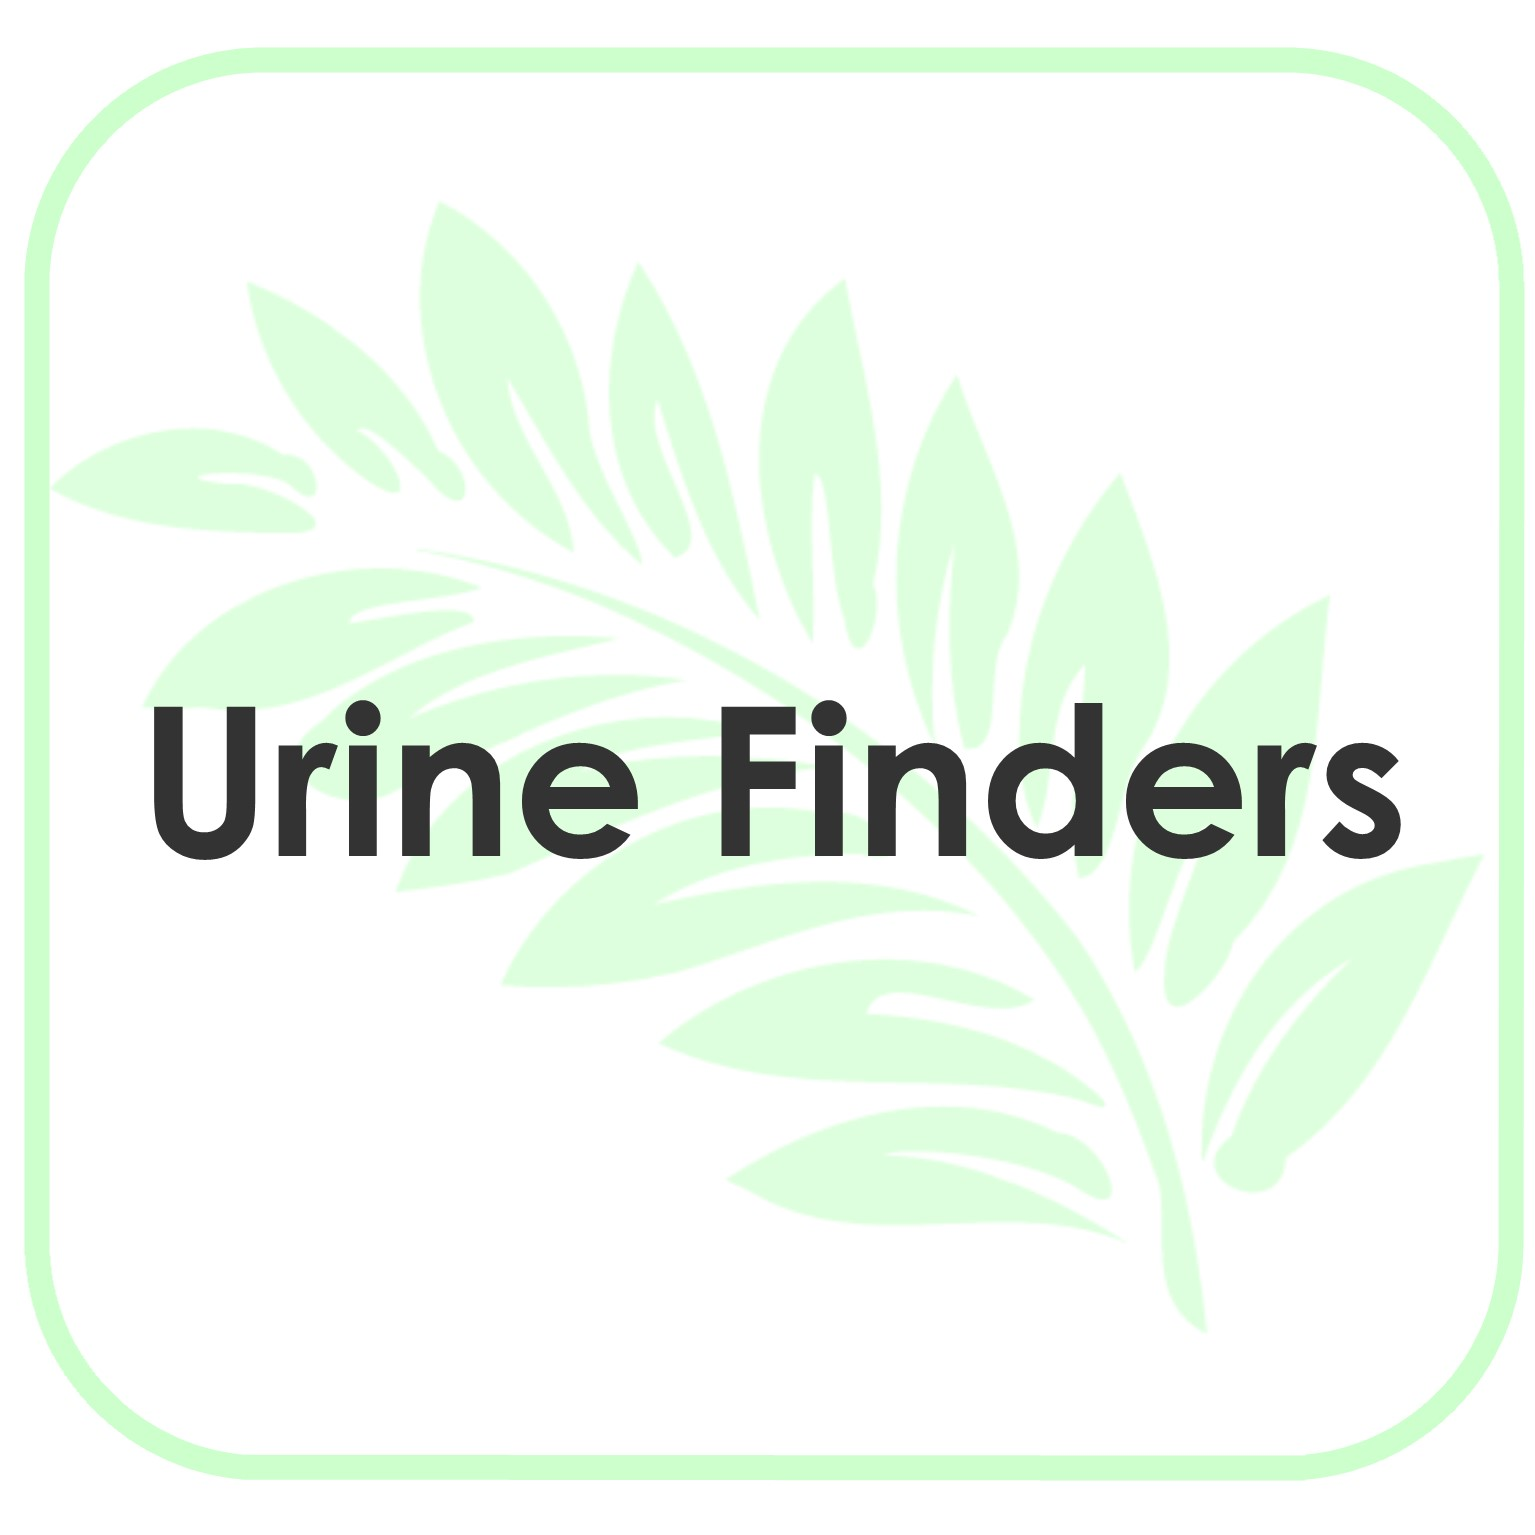 Urine Finders Product Instructions